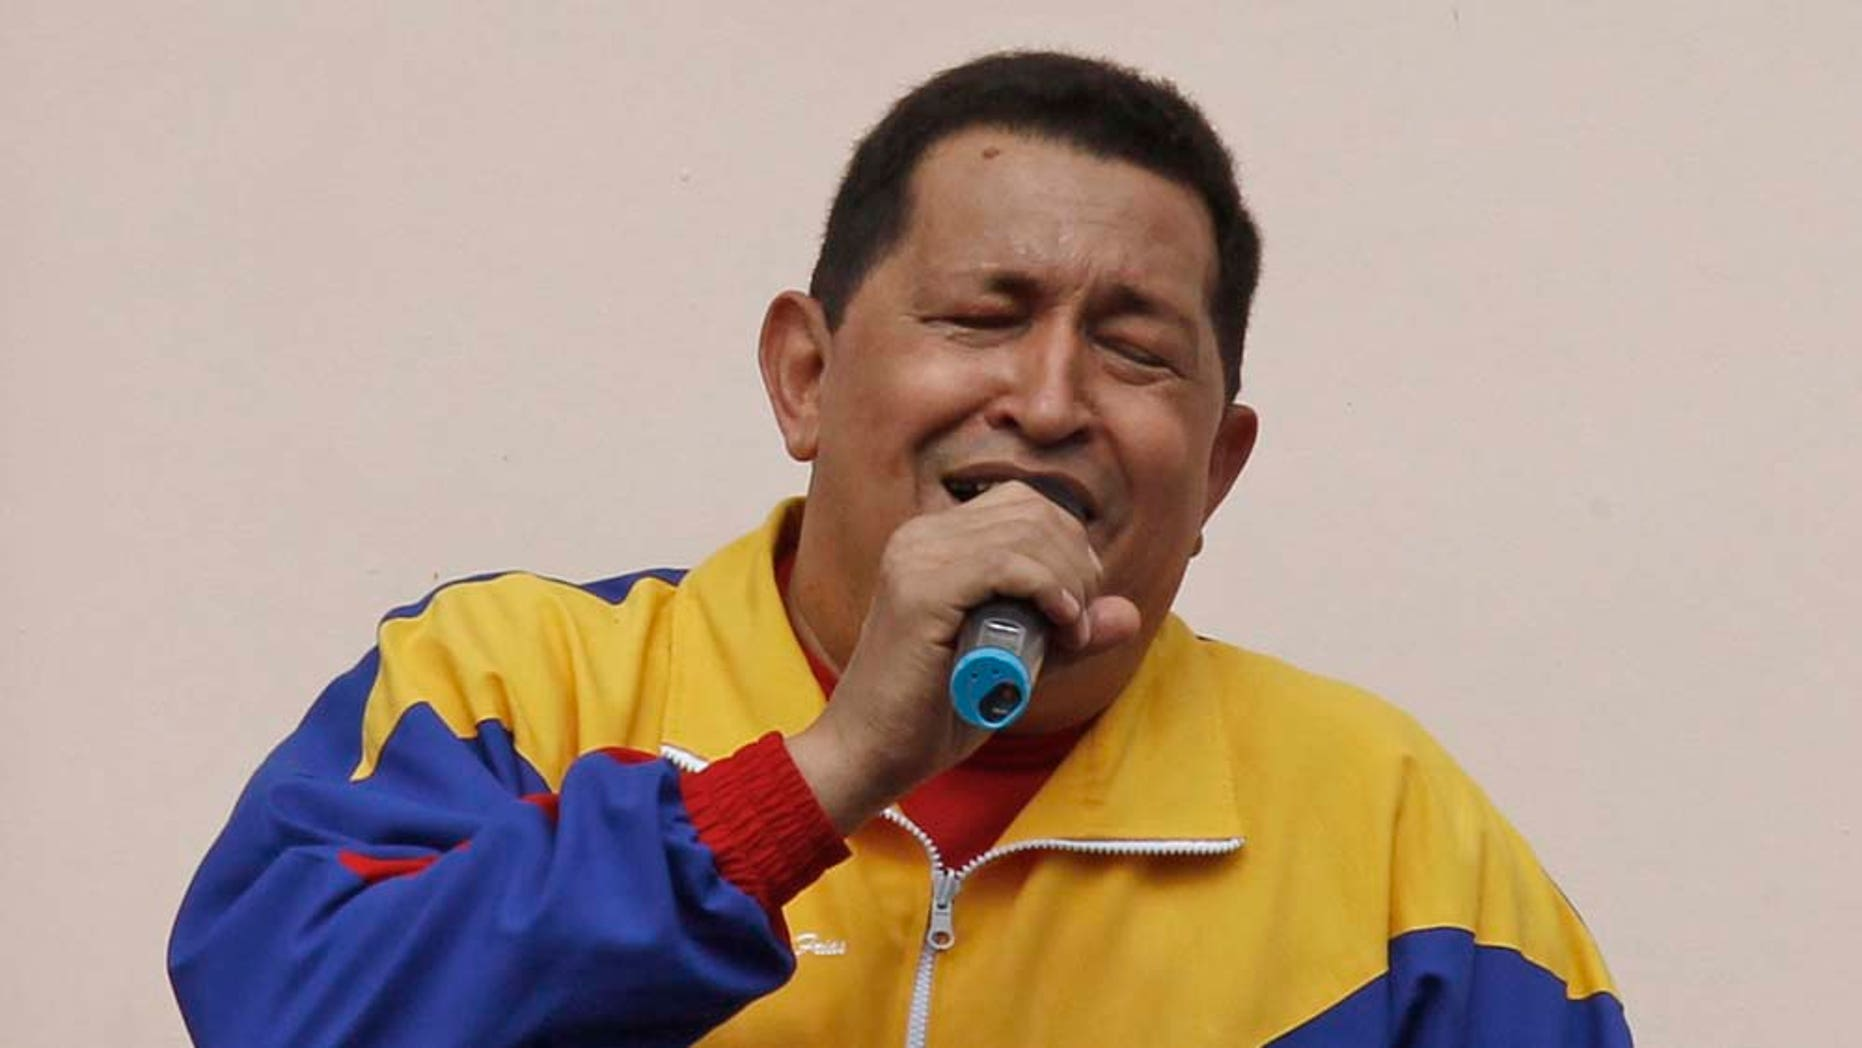 """Venezuela's President Hugo Chavez, right, sings next to his daughter Maria and grandson Jorge after his radio and television show """"Hello President"""" at Miraflores presidential palace in Caracas, Sunday, May 22, 2011. Chavez appeared in public for the first time since injuring himself while jogging two weeks ago. (AP Photo/Fernando Llano)"""